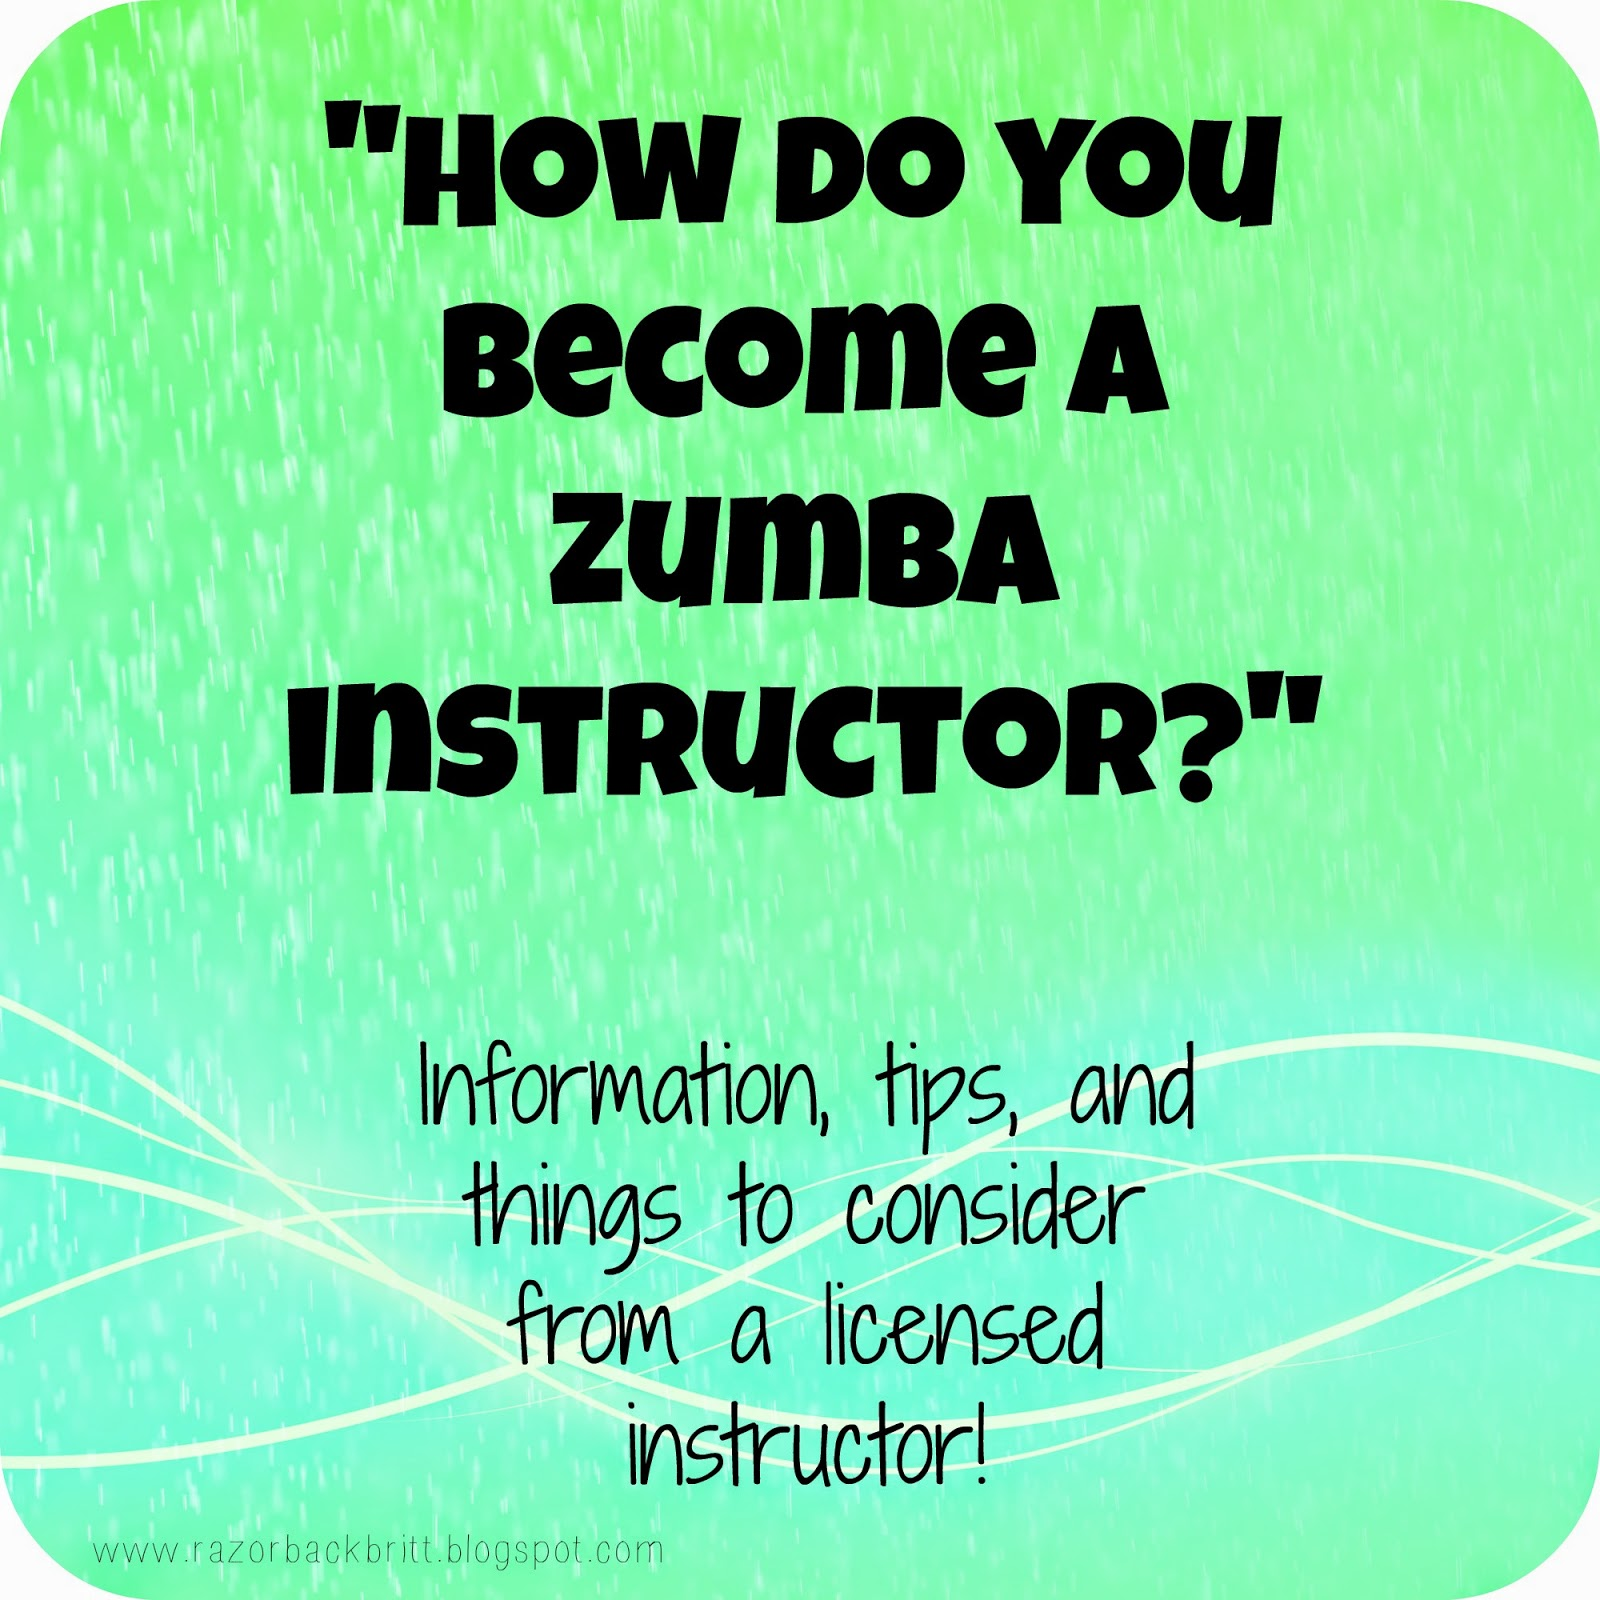 How do you become a zumba instructor zumba 101 razorback britt find out how to become a zumba instructor here xflitez Images